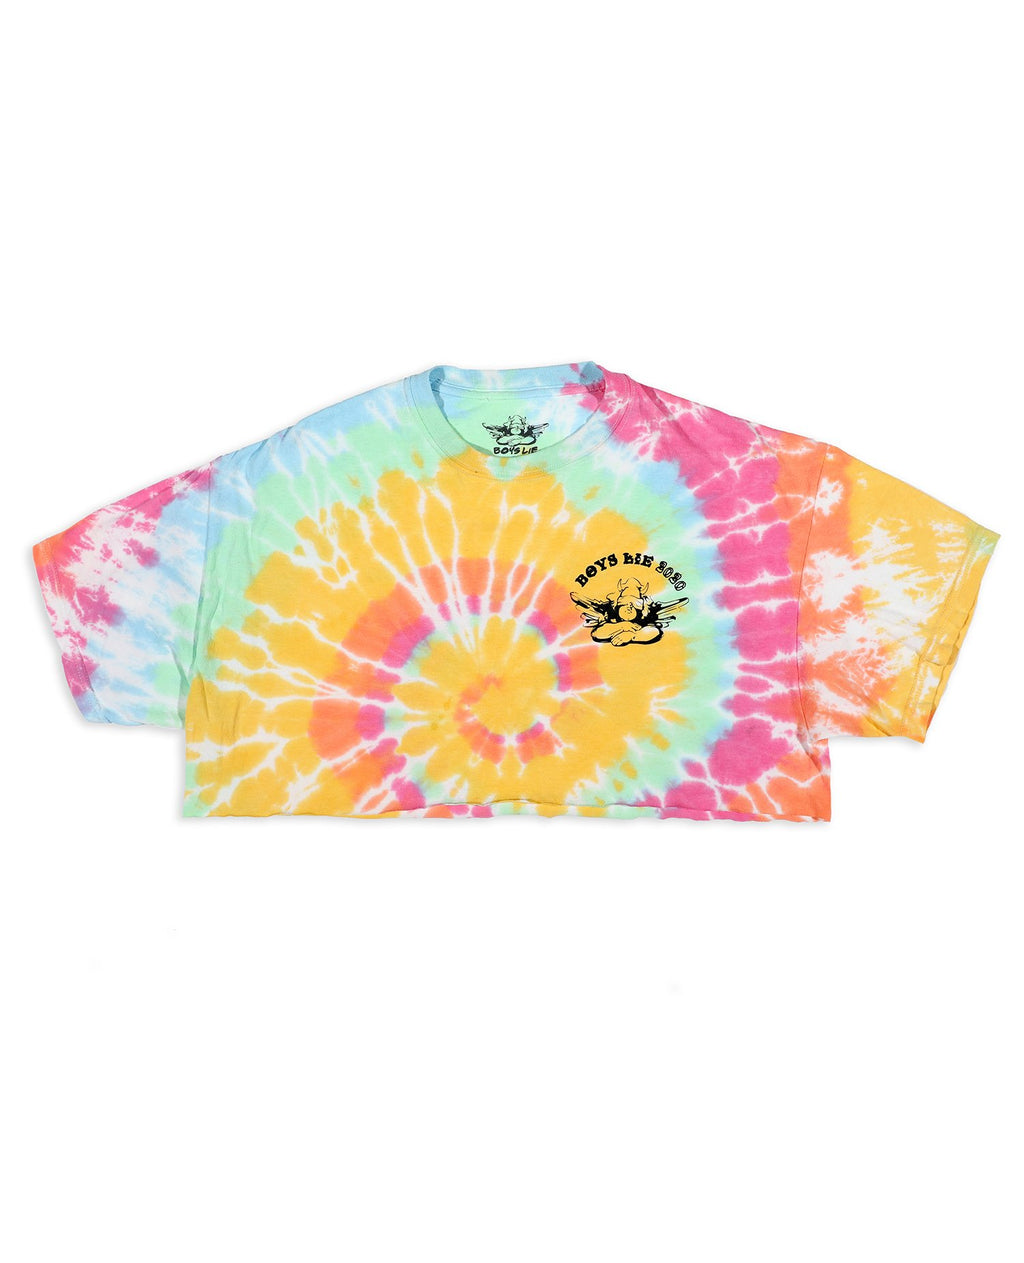 Boys Lie Within Us Cropped Tie Dye Tee